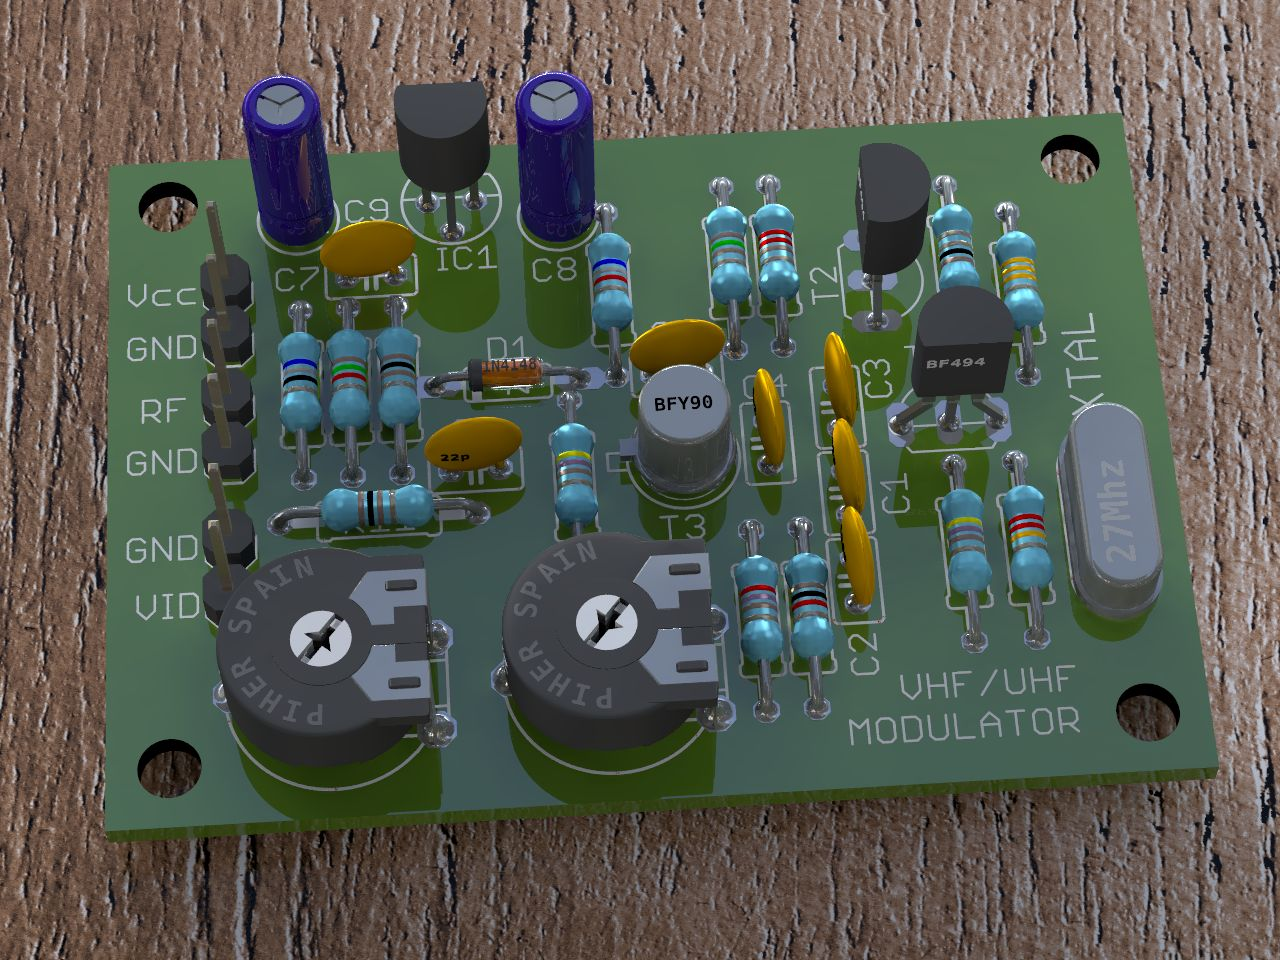 Video Render 3d Images Of Eagle Pcb Projects One Transistor Transistors Amplitude Modulation Circuit Components Electrical Board Rendered With Pov Ray Hdr Lighting